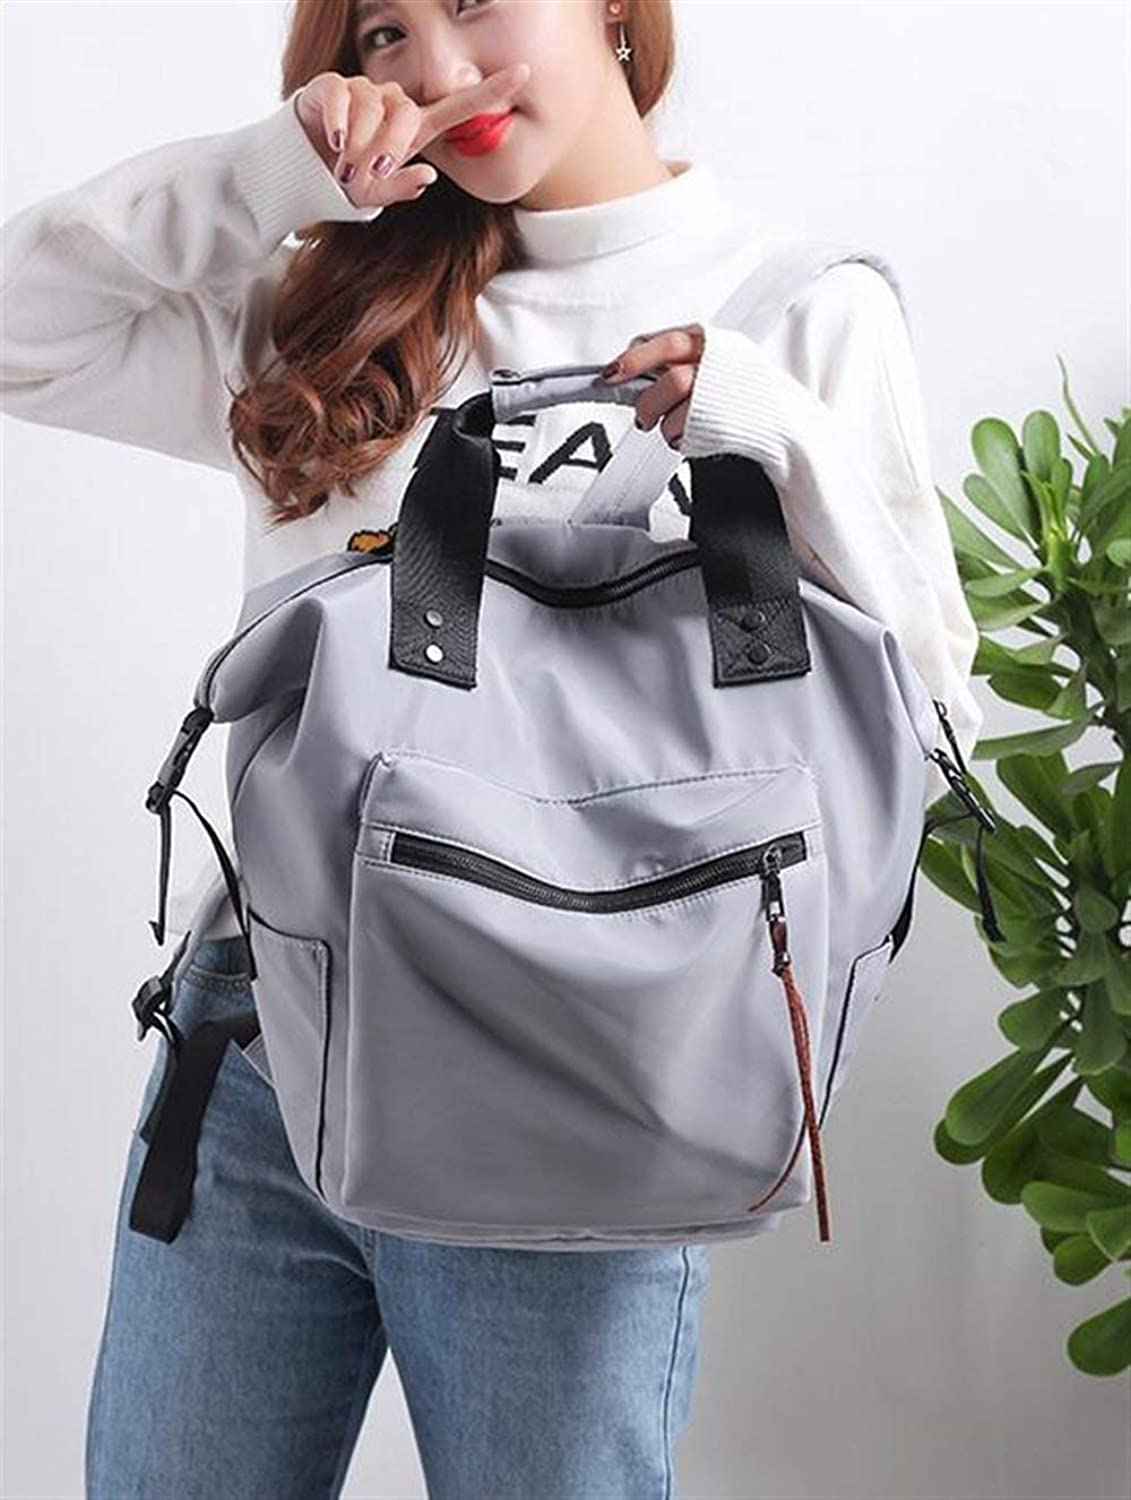 YUHUS HOME Personality Backpacks Creative Nylon Student Tide Bag Shoulder Bag Casual Outdoor Backpack